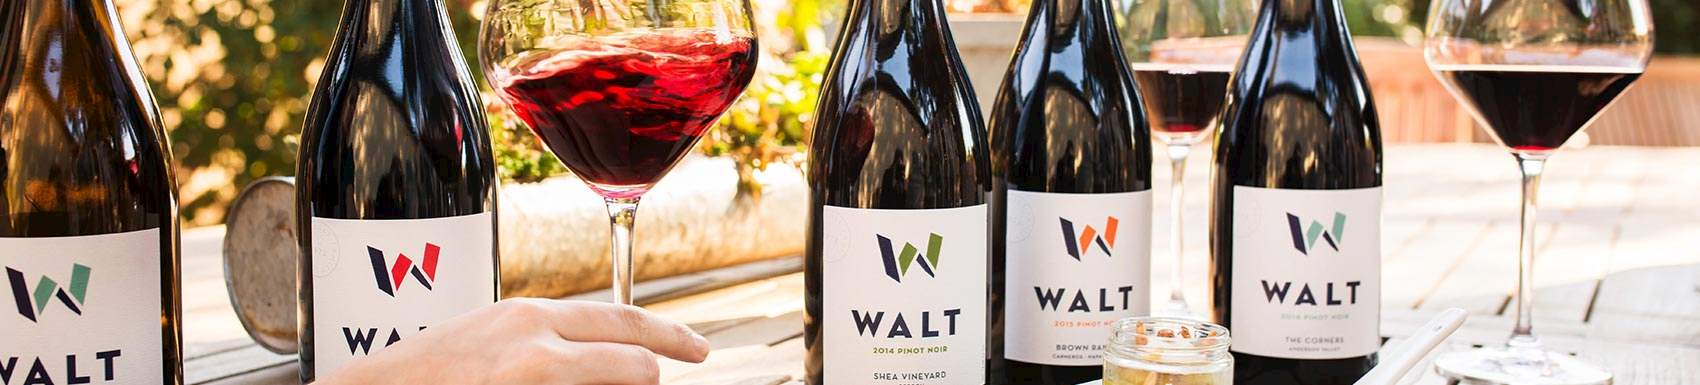 WALT - Sonoma in Napa, California